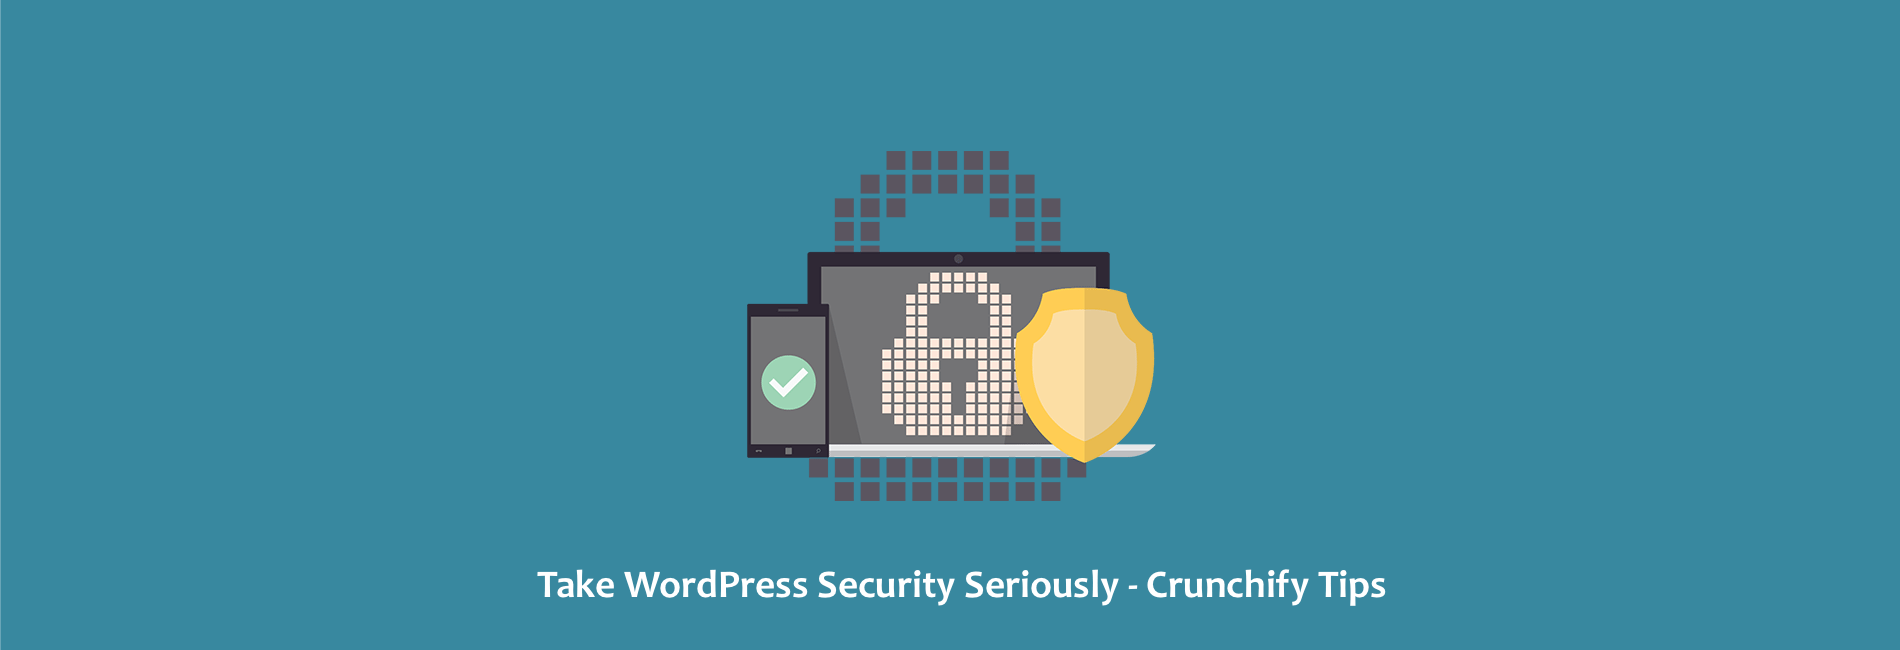 Take WordPress Security Seriously